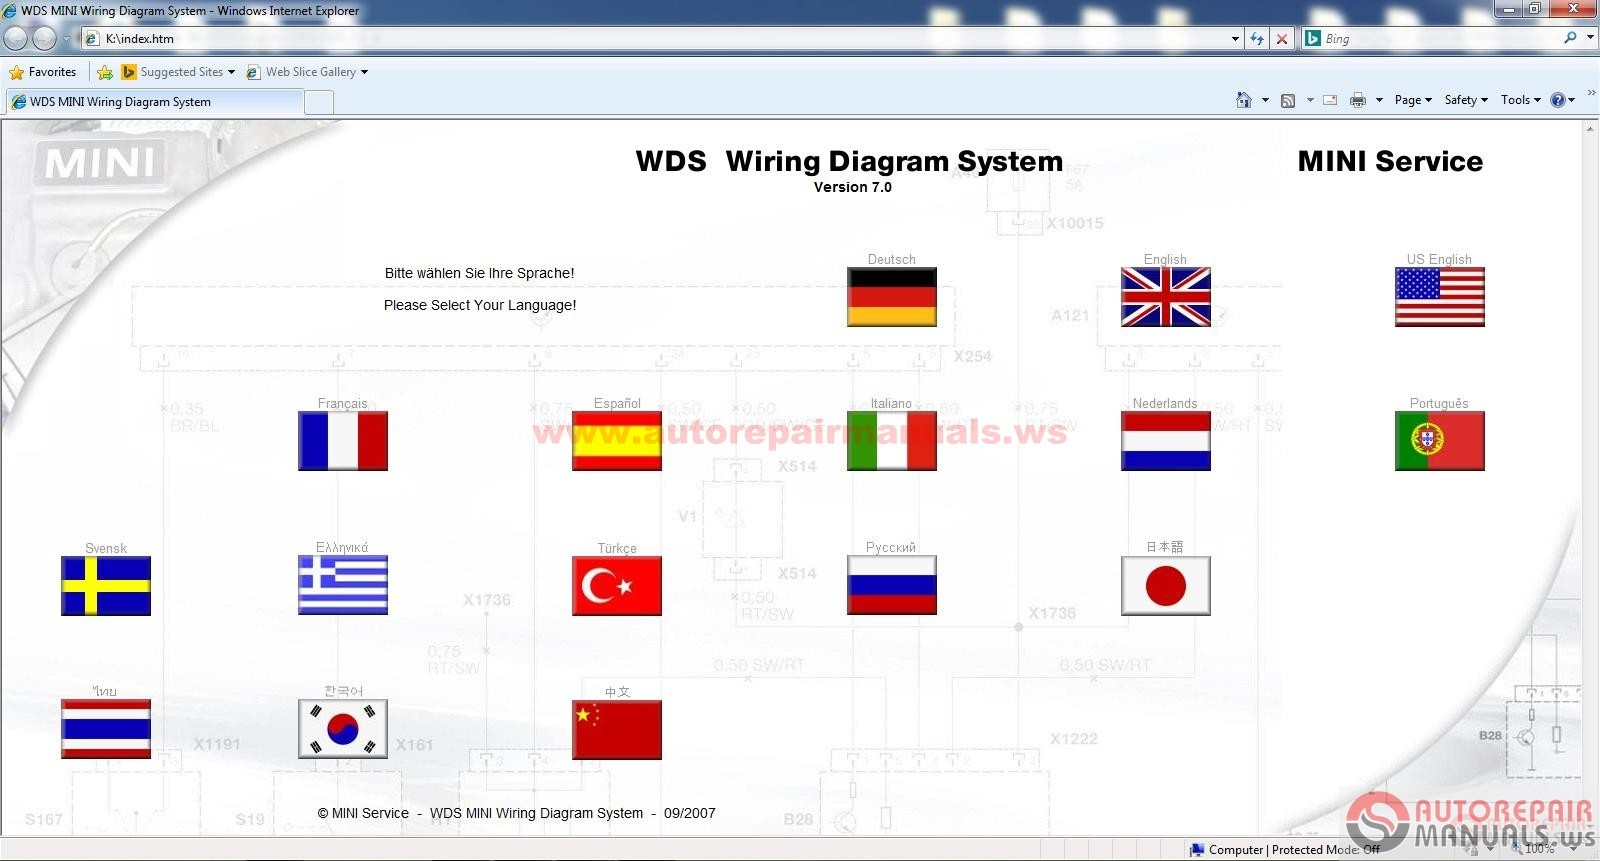 Bmw Mini Wds Wiring Diagram System 7 0 Diagrams 1998 328i V15 And V7 Auto 98